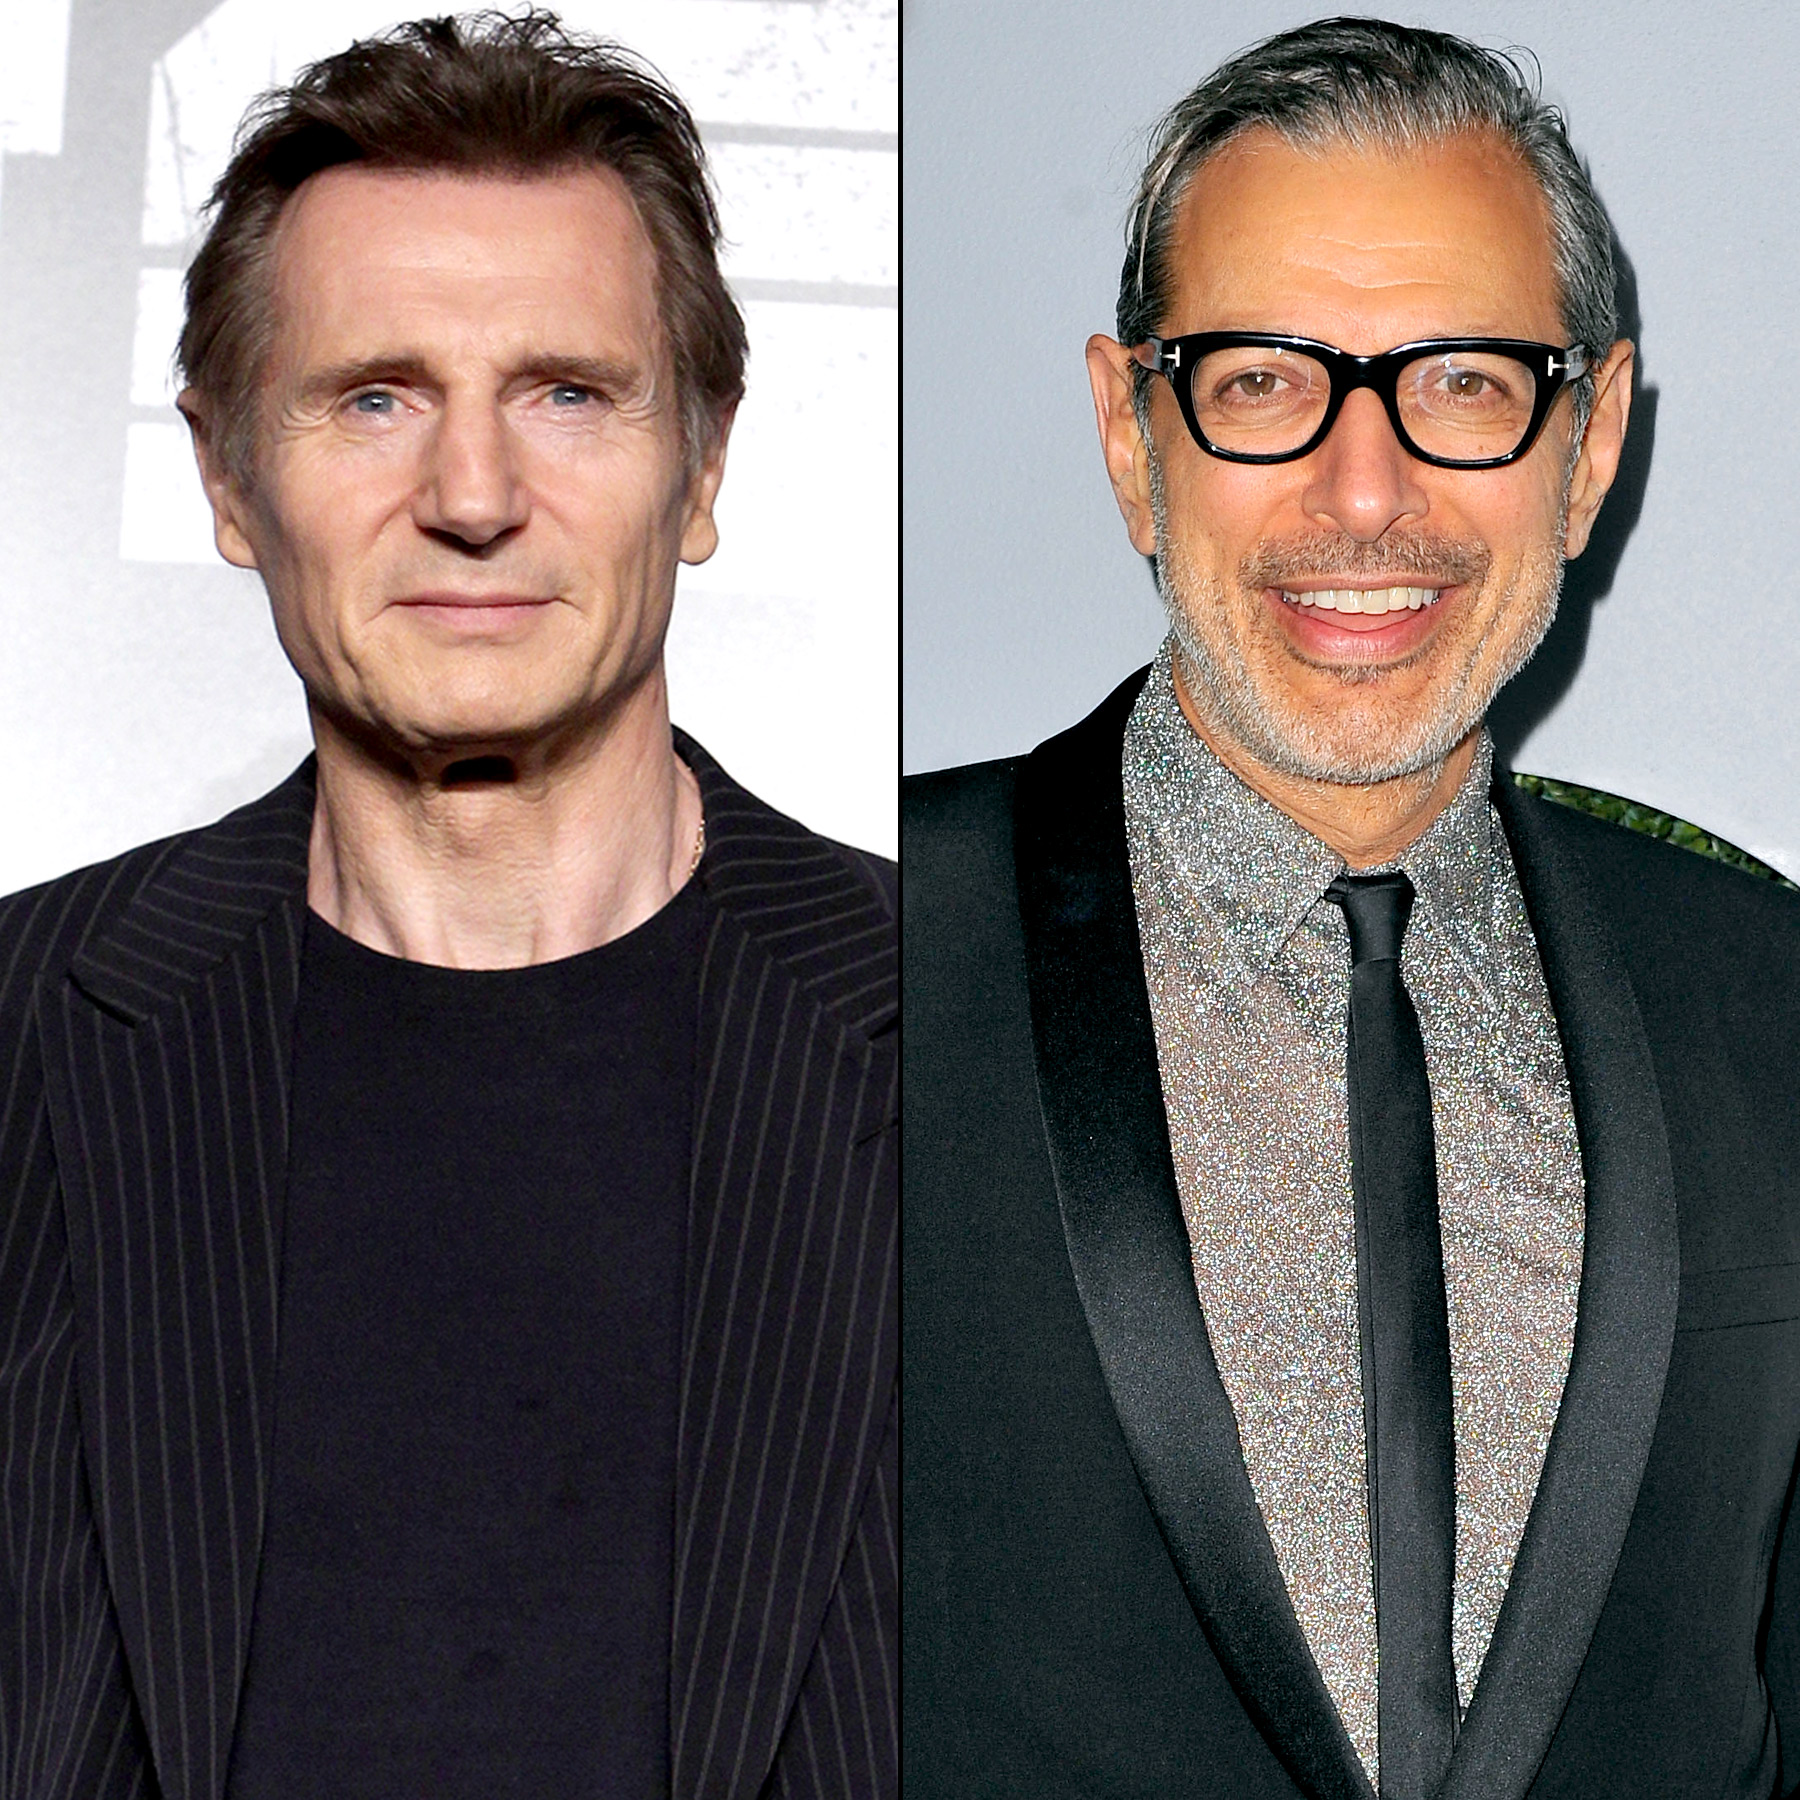 Jeff Goldblum and Liam Neeson